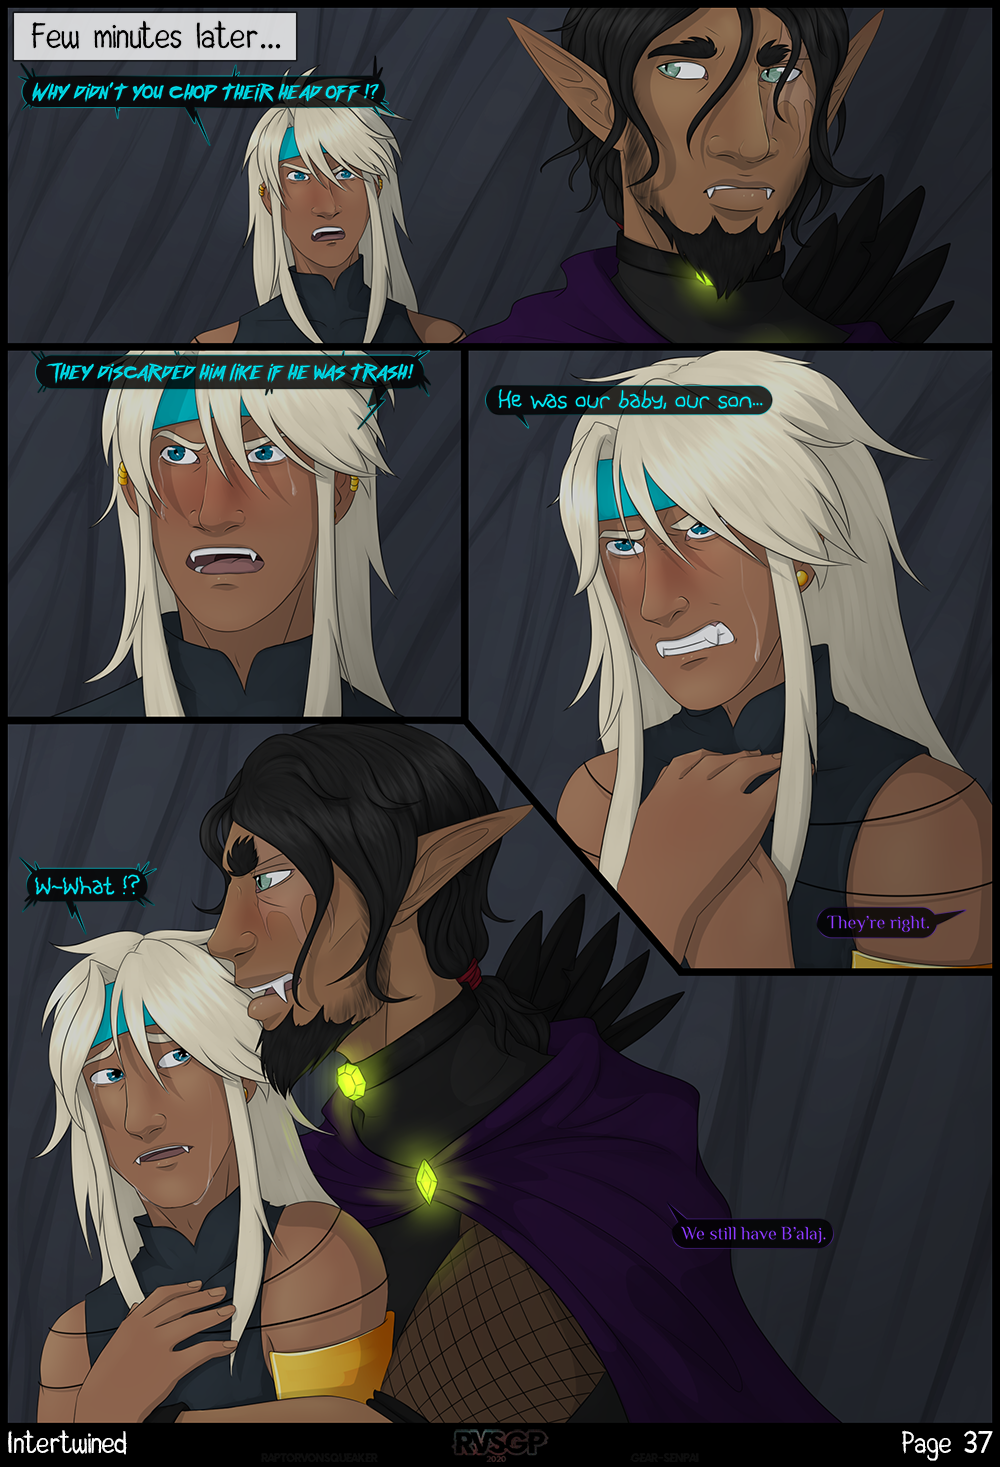 Page 37 - Chop them up!